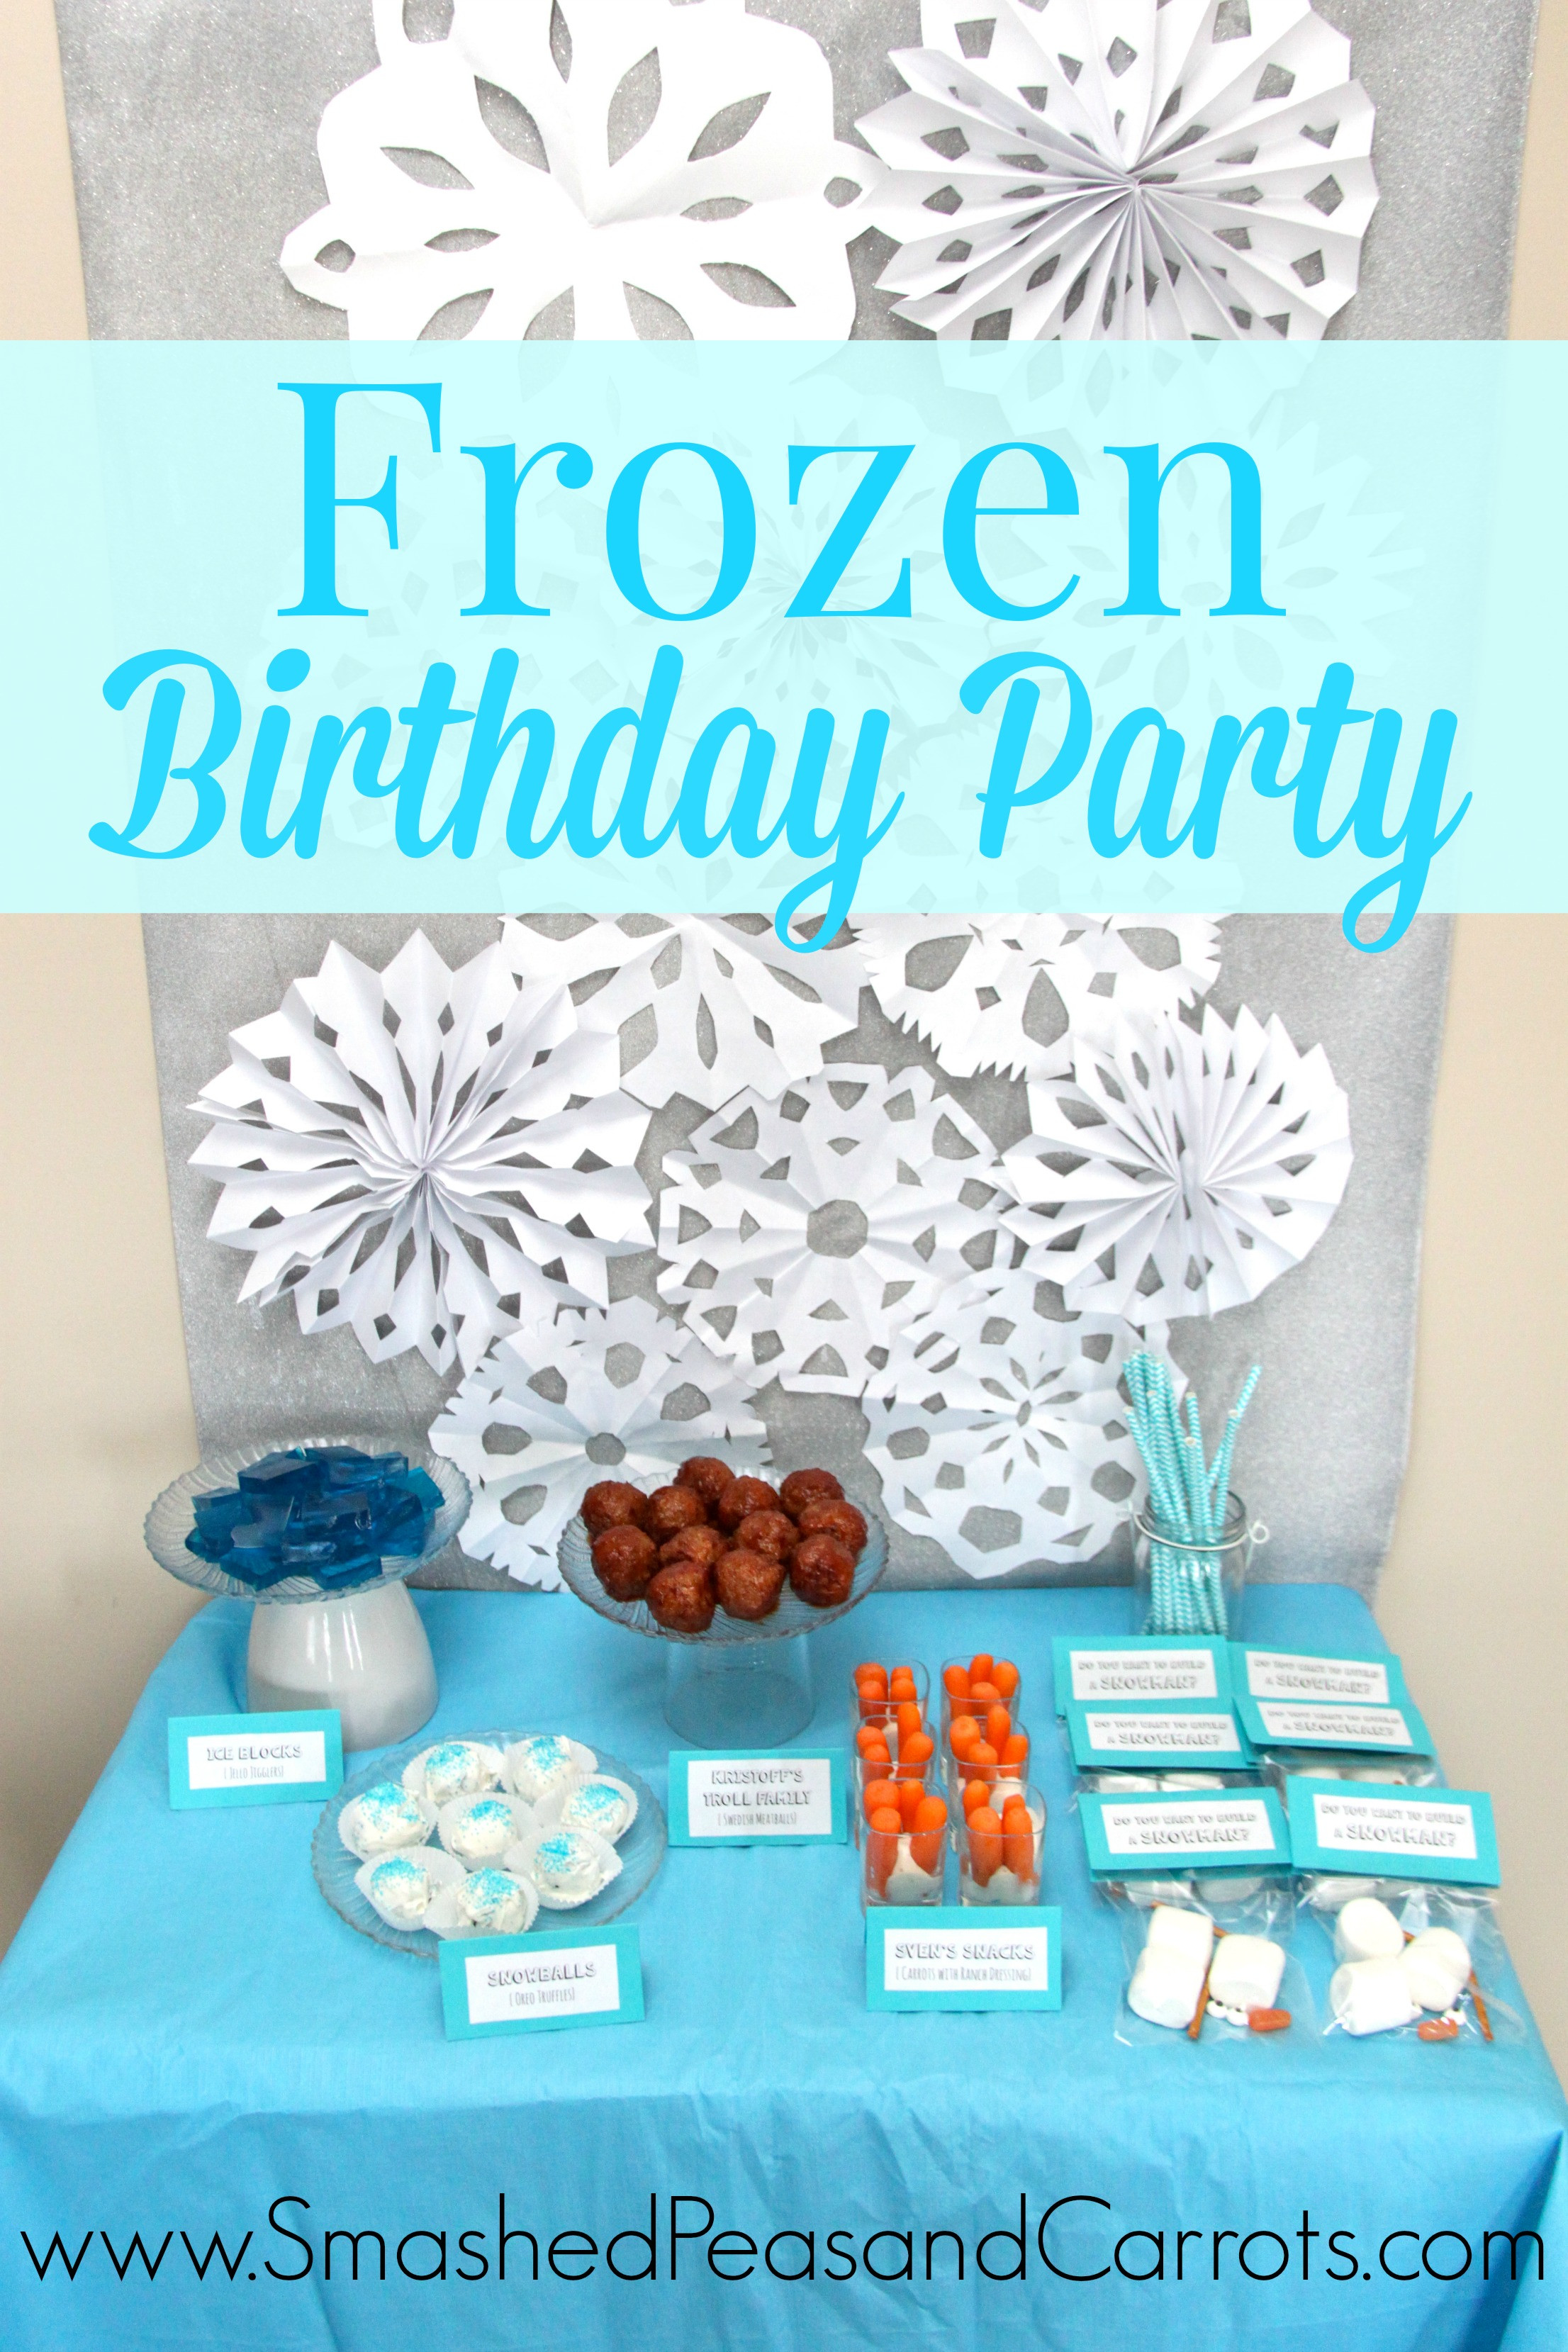 Frozen Free Printable Food Labels Eloise S Frozen Birthday Party with Free Printables